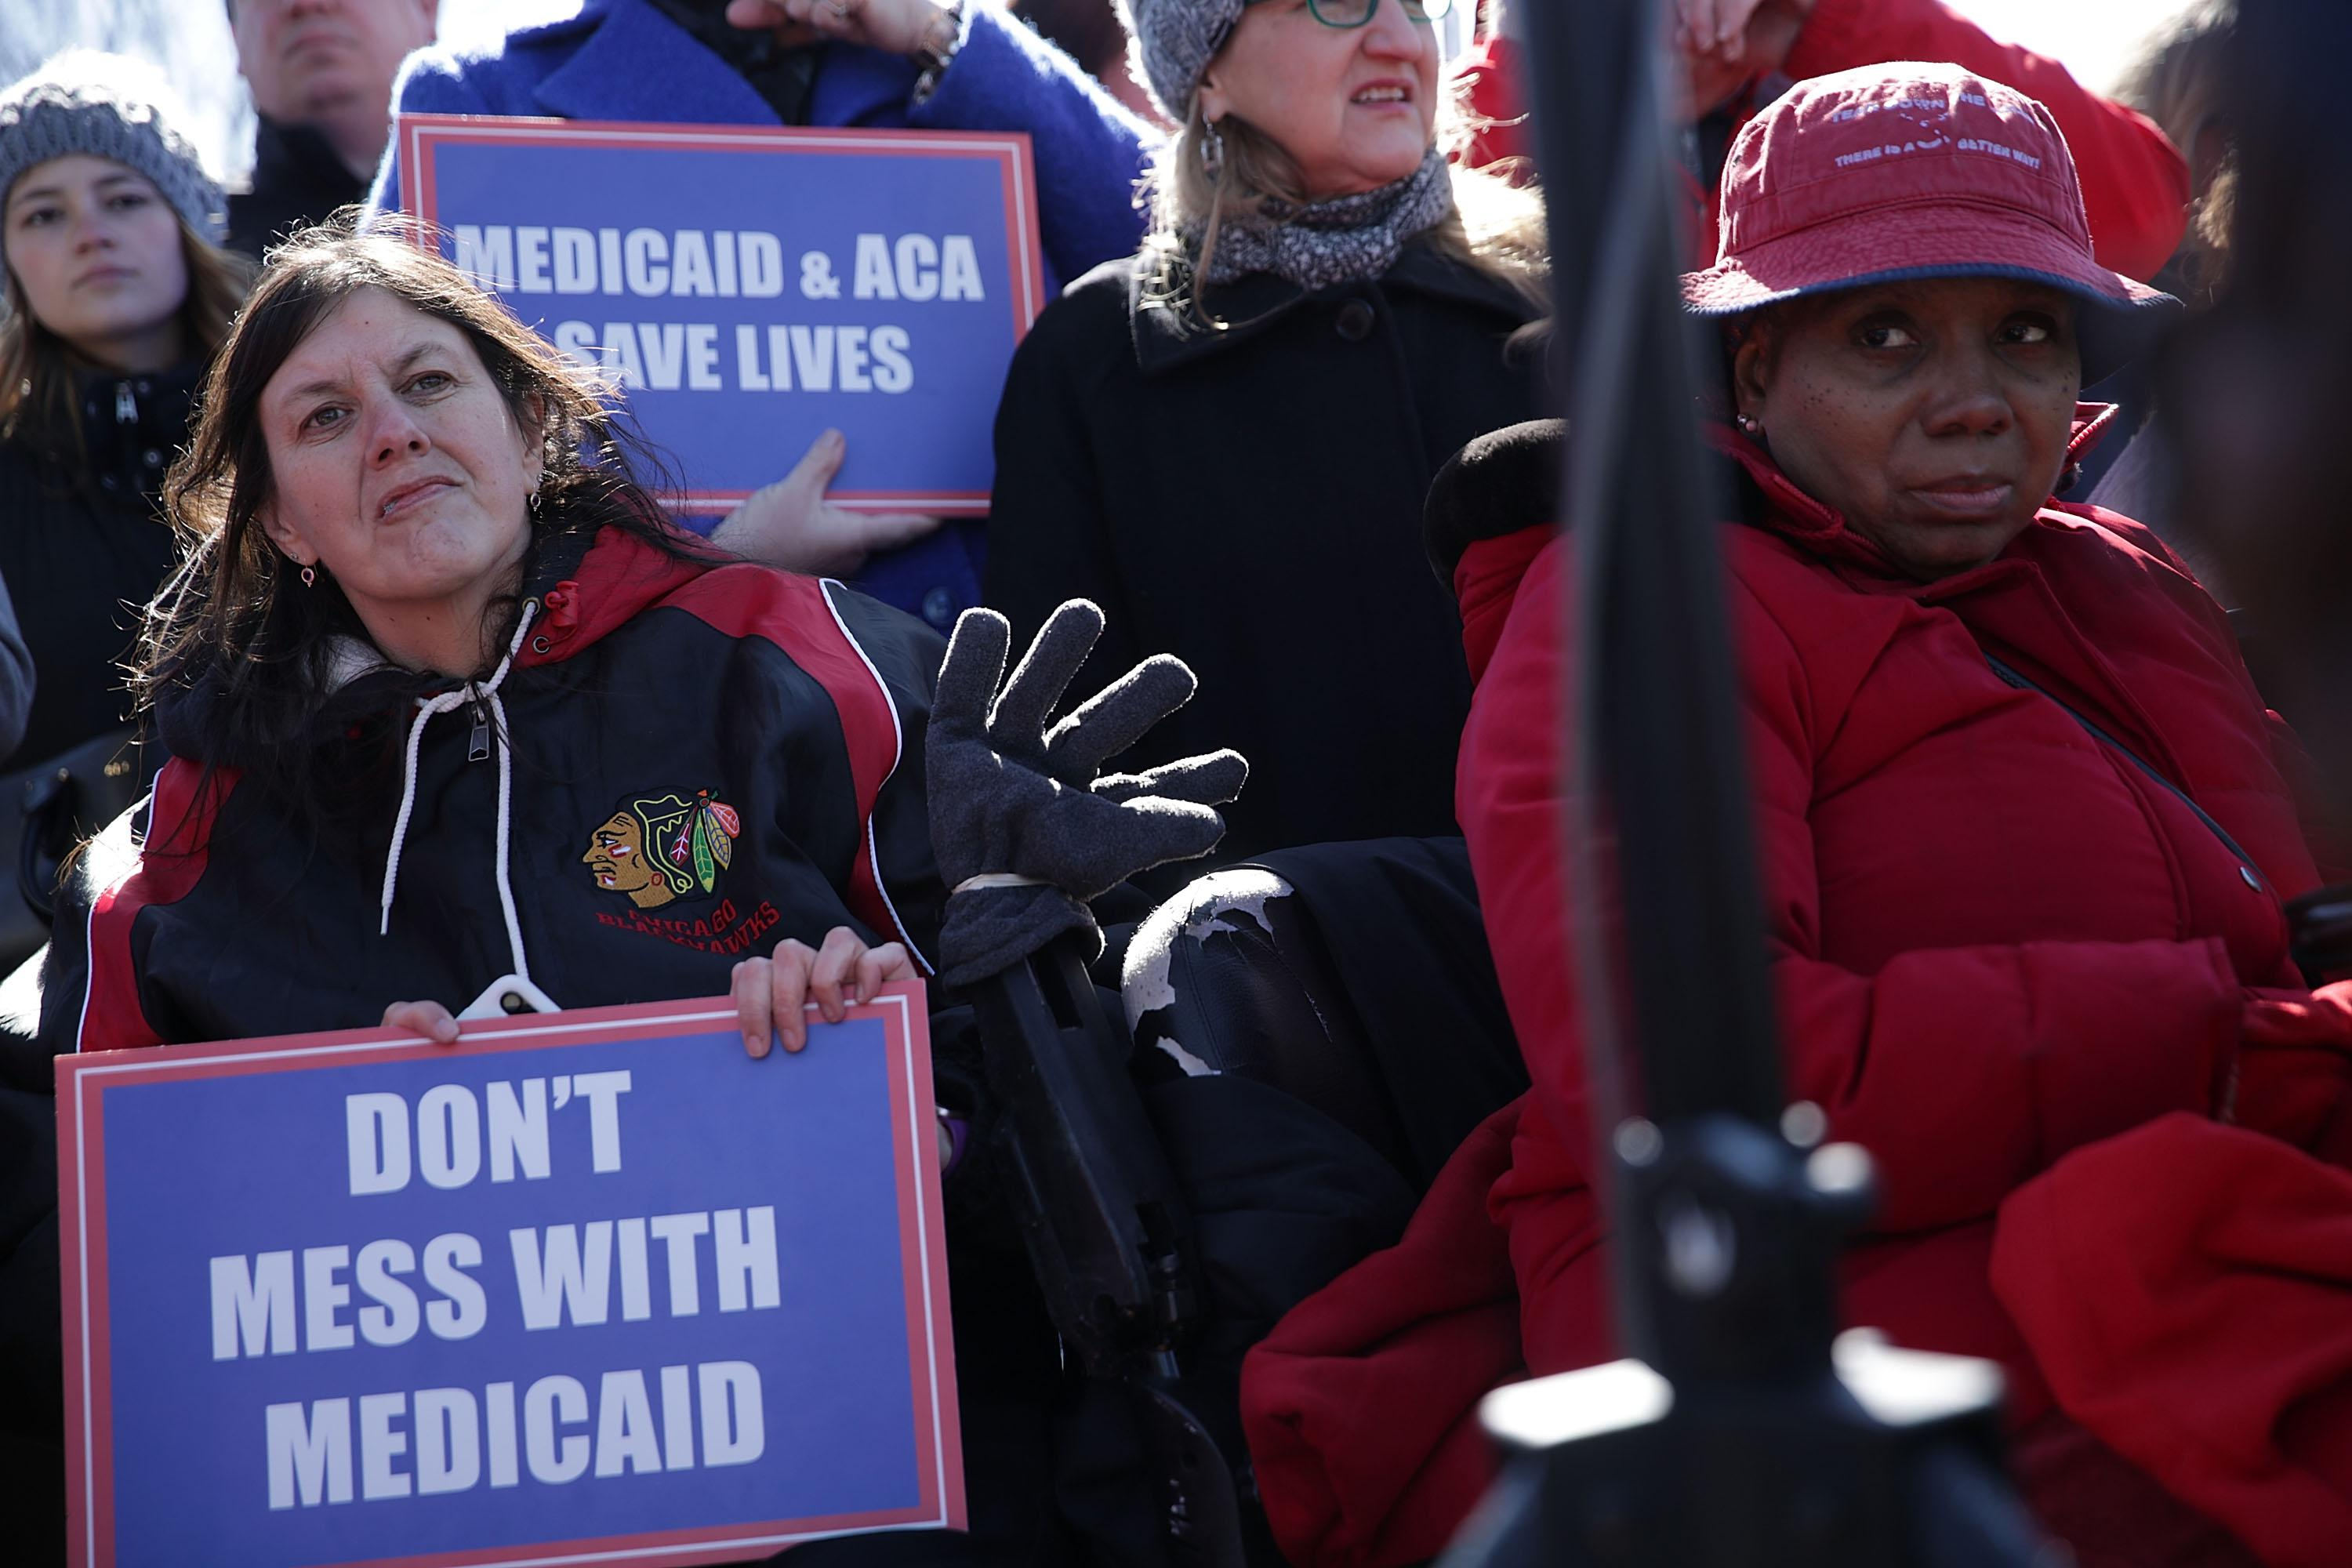 WASHINGTON, DC - MARCH 22:  Health care activists participate in a rally in front of the Capitol March 22, 2017 on Capitol Hill in Washington, DC. Senate Democrats held the rally to highlight changes being sought in Medicaid in the Republican American Health Care Act.  (Photo by Alex Wong/Getty Images)